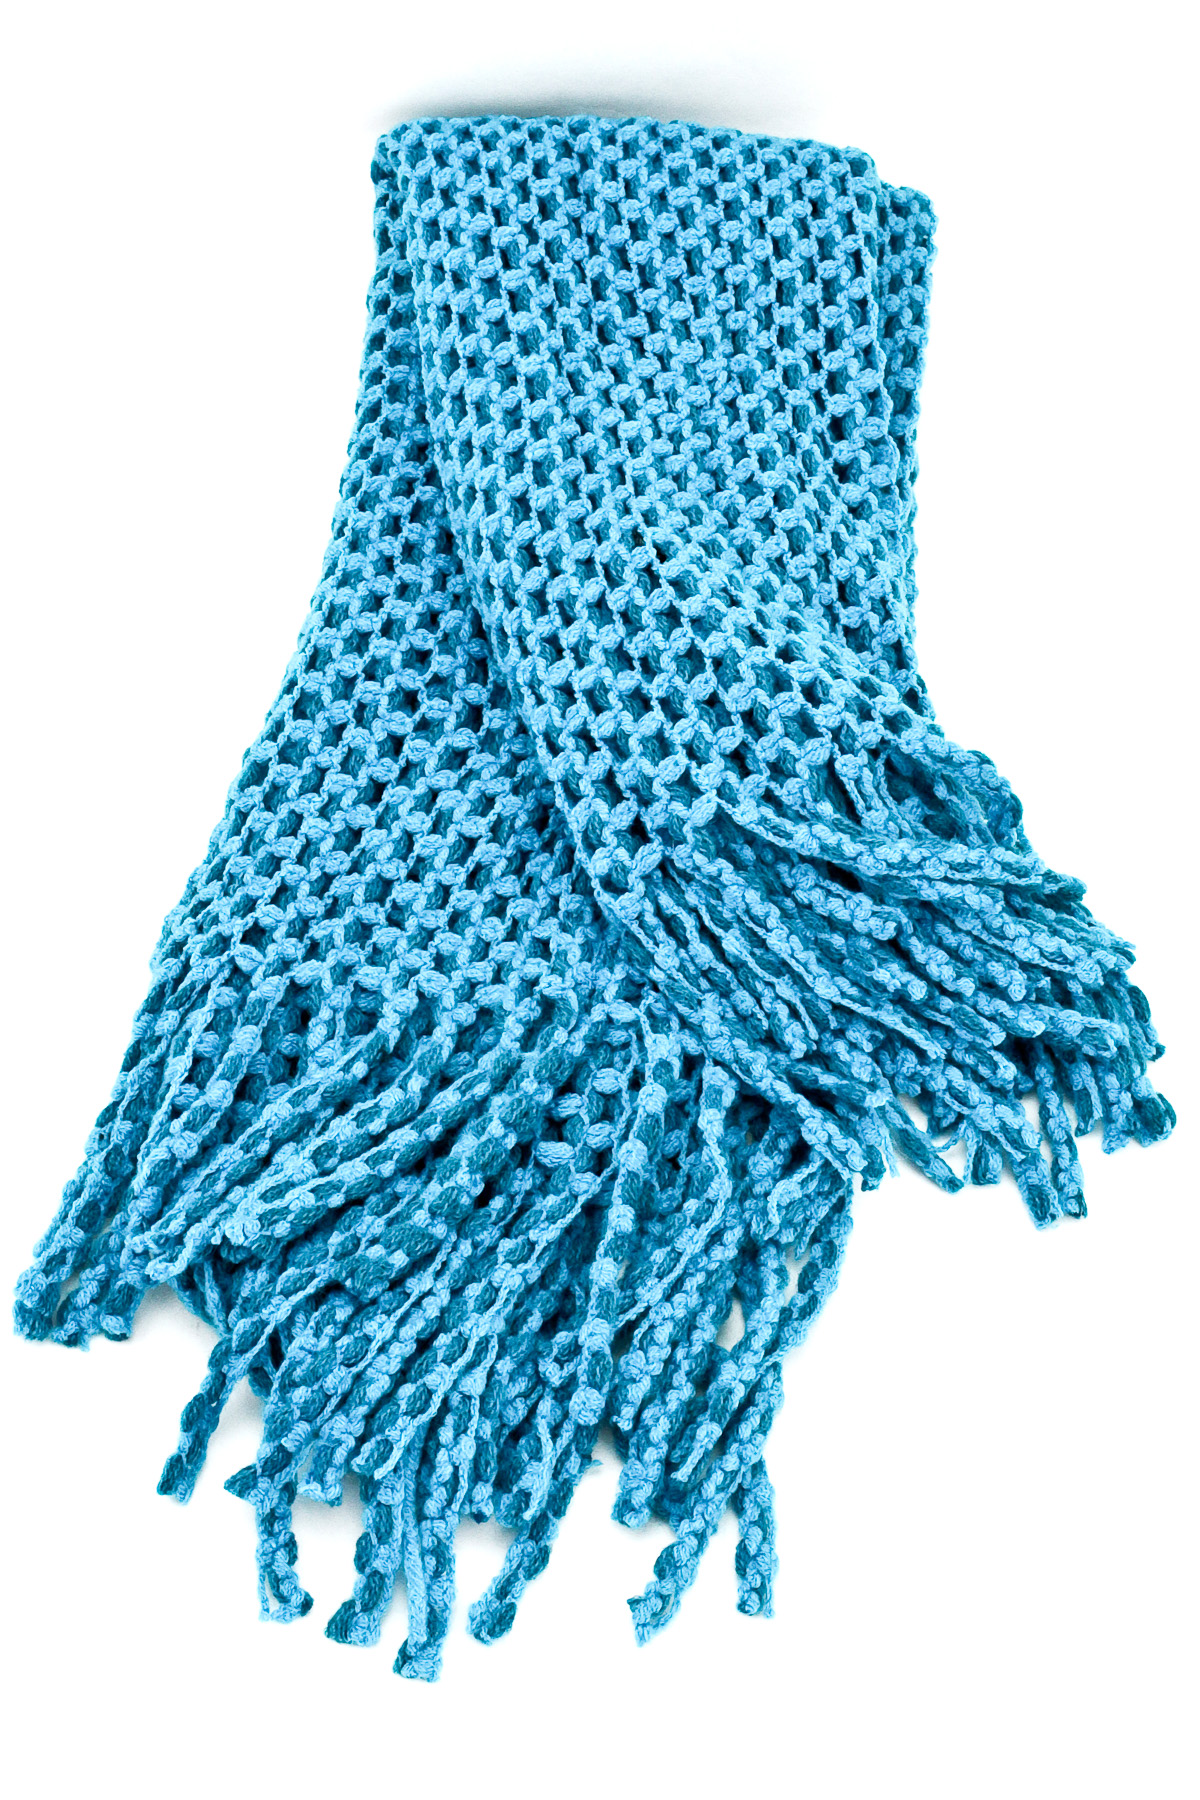 Knitting Pattern Scarf With Fringe : Knitted Fringe Infinity Scarf - Scarves